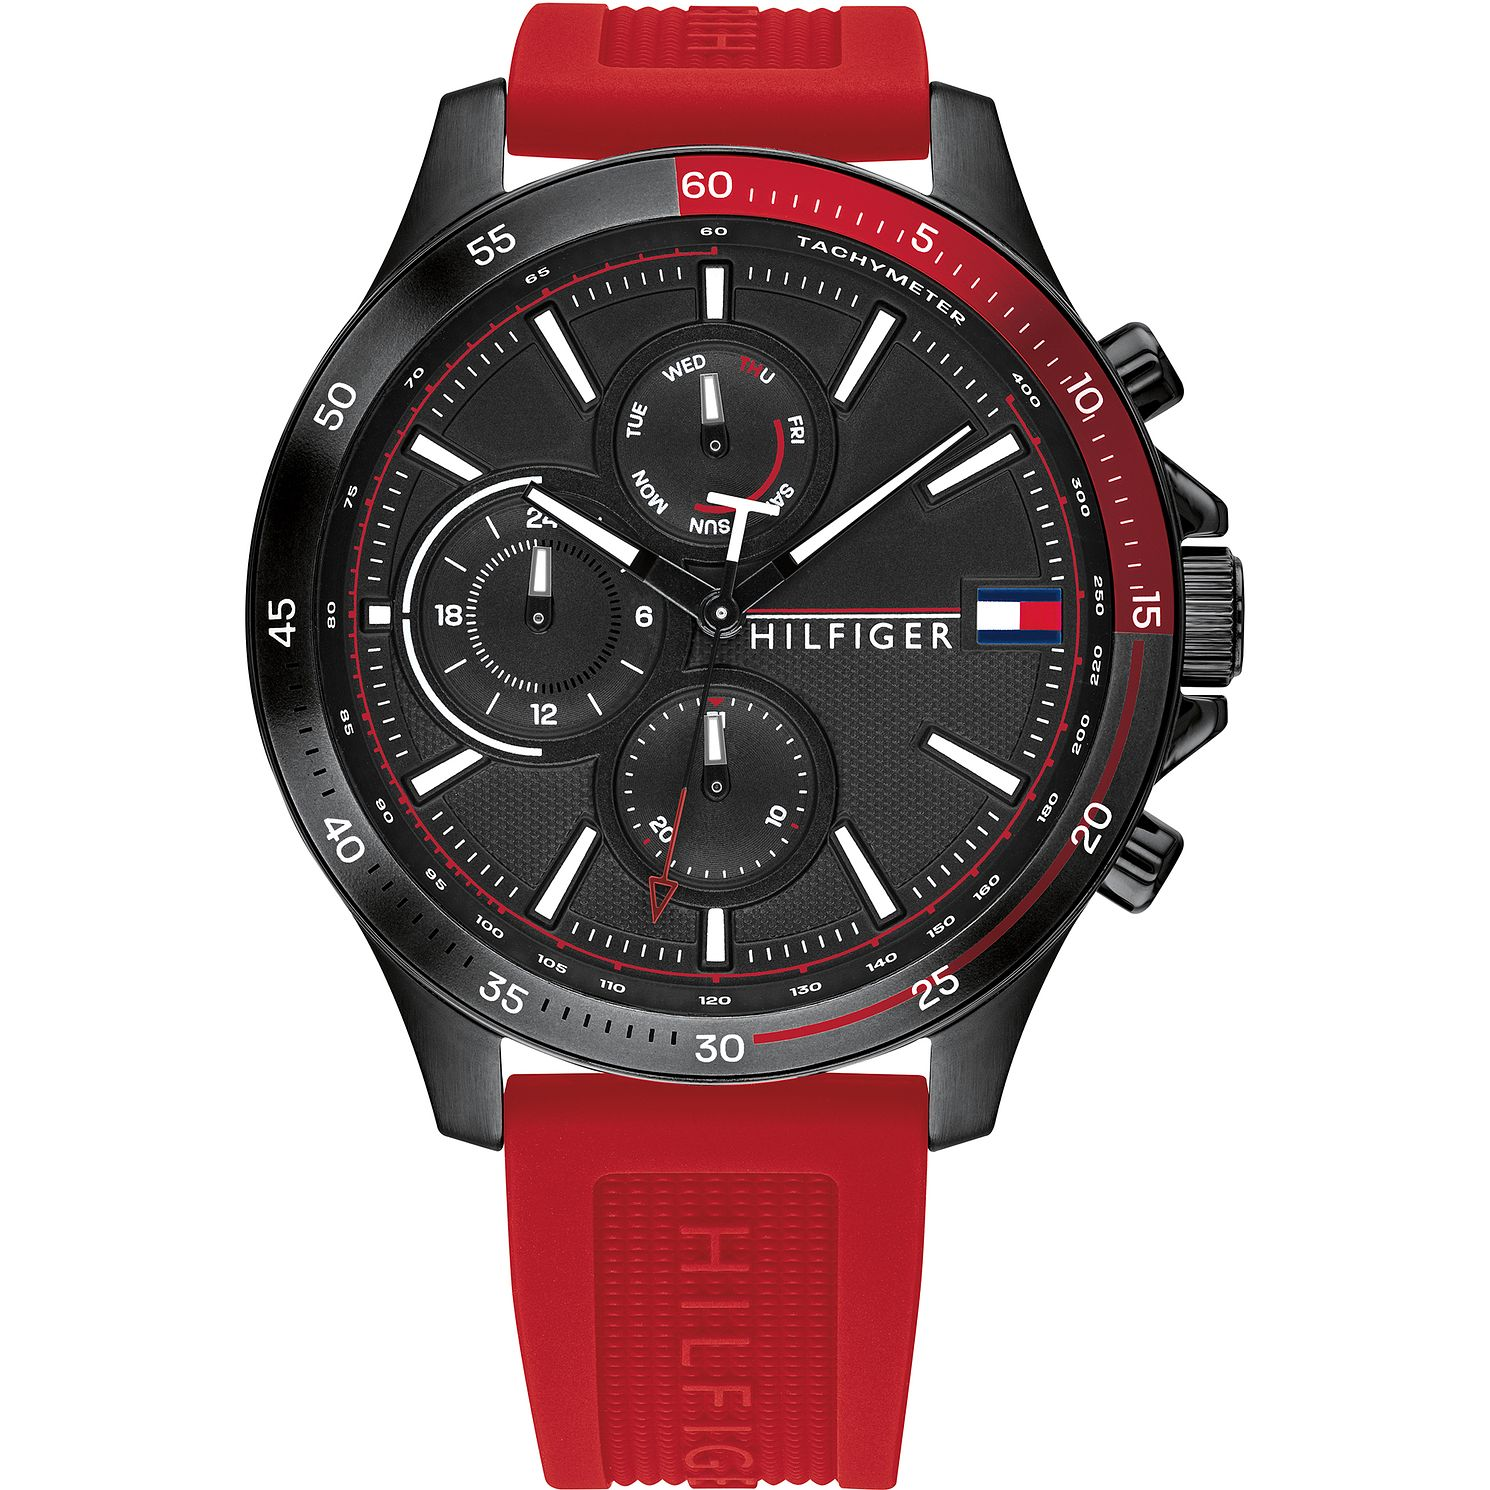 Tommy Hilfiger Men's Red Silicone Strap Watch - Product number 4872541